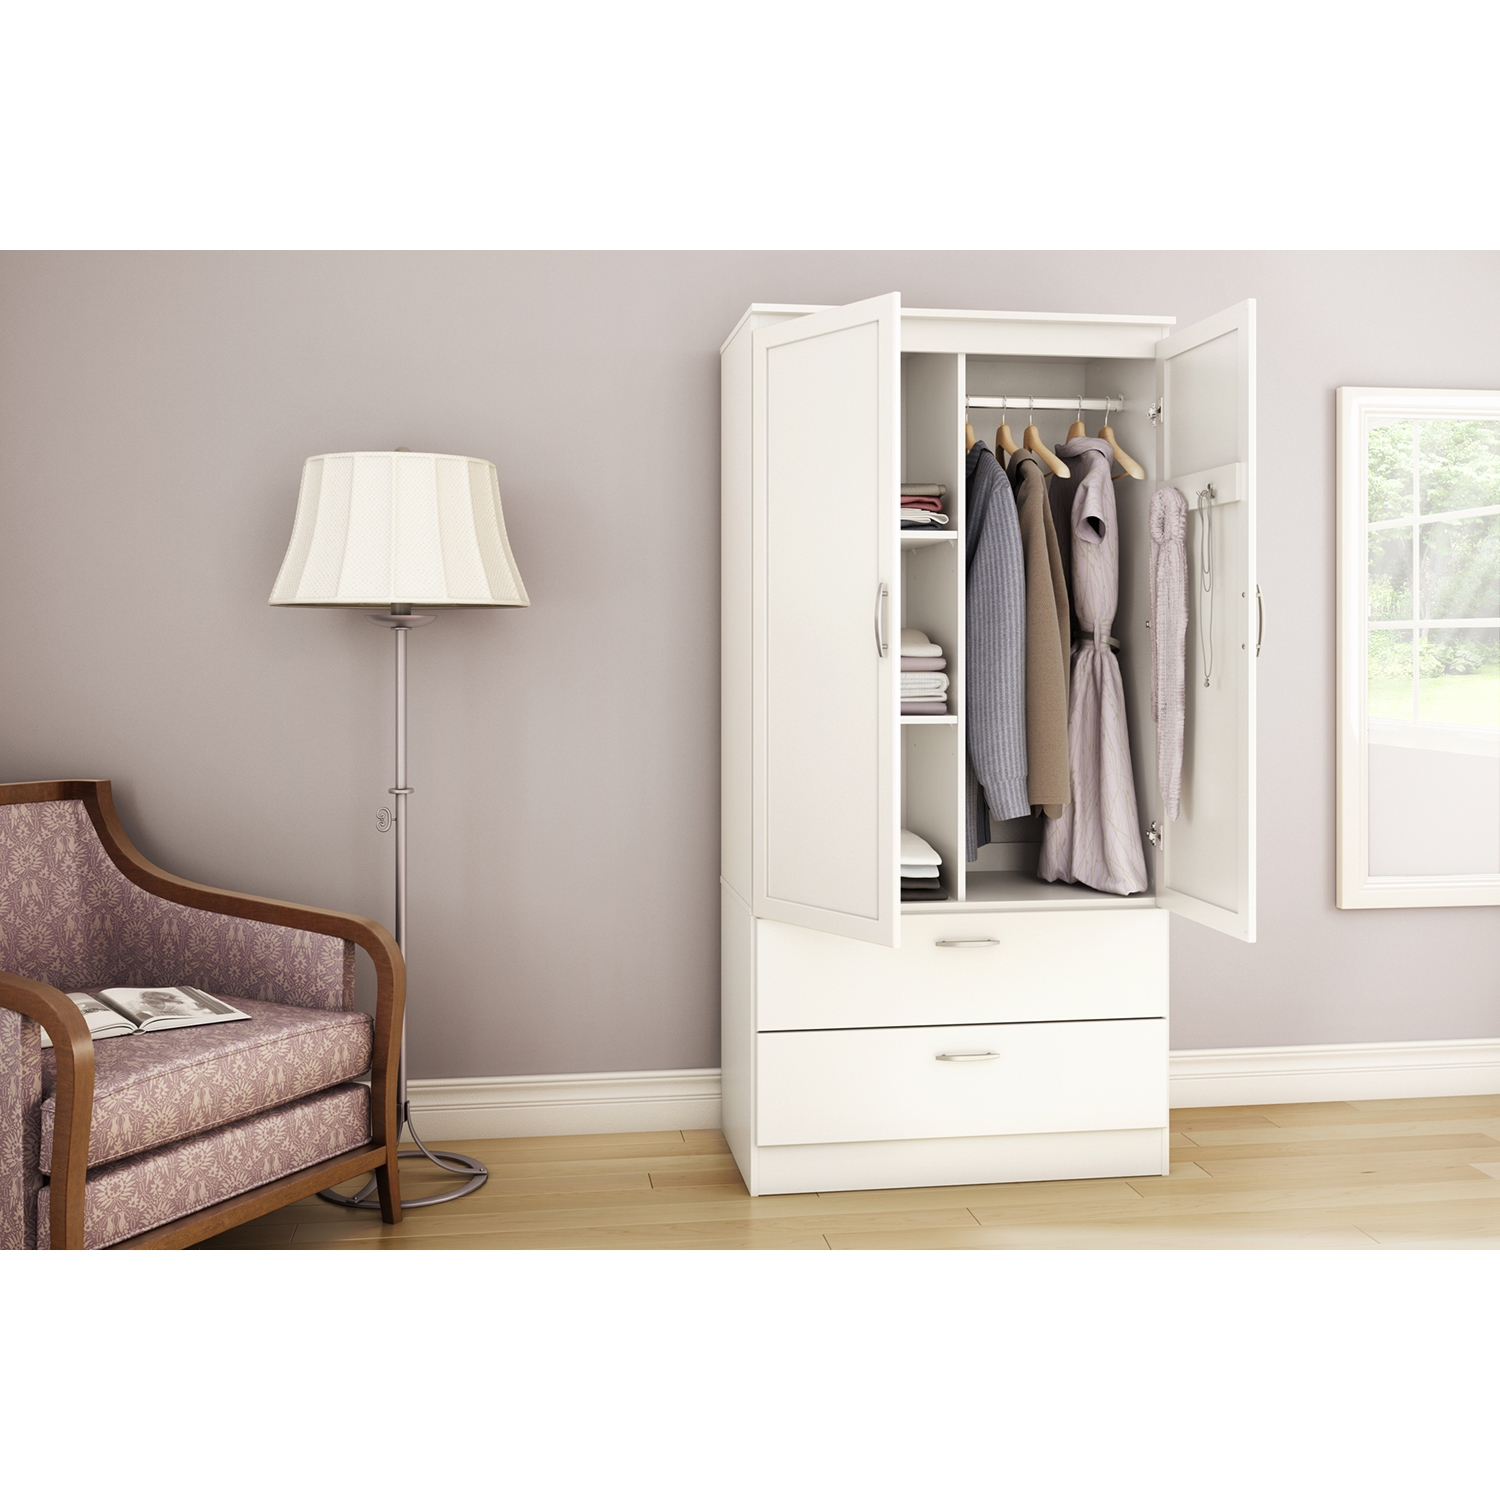 Acapella Wardrobe Armoire - Pure White - SS-5350038